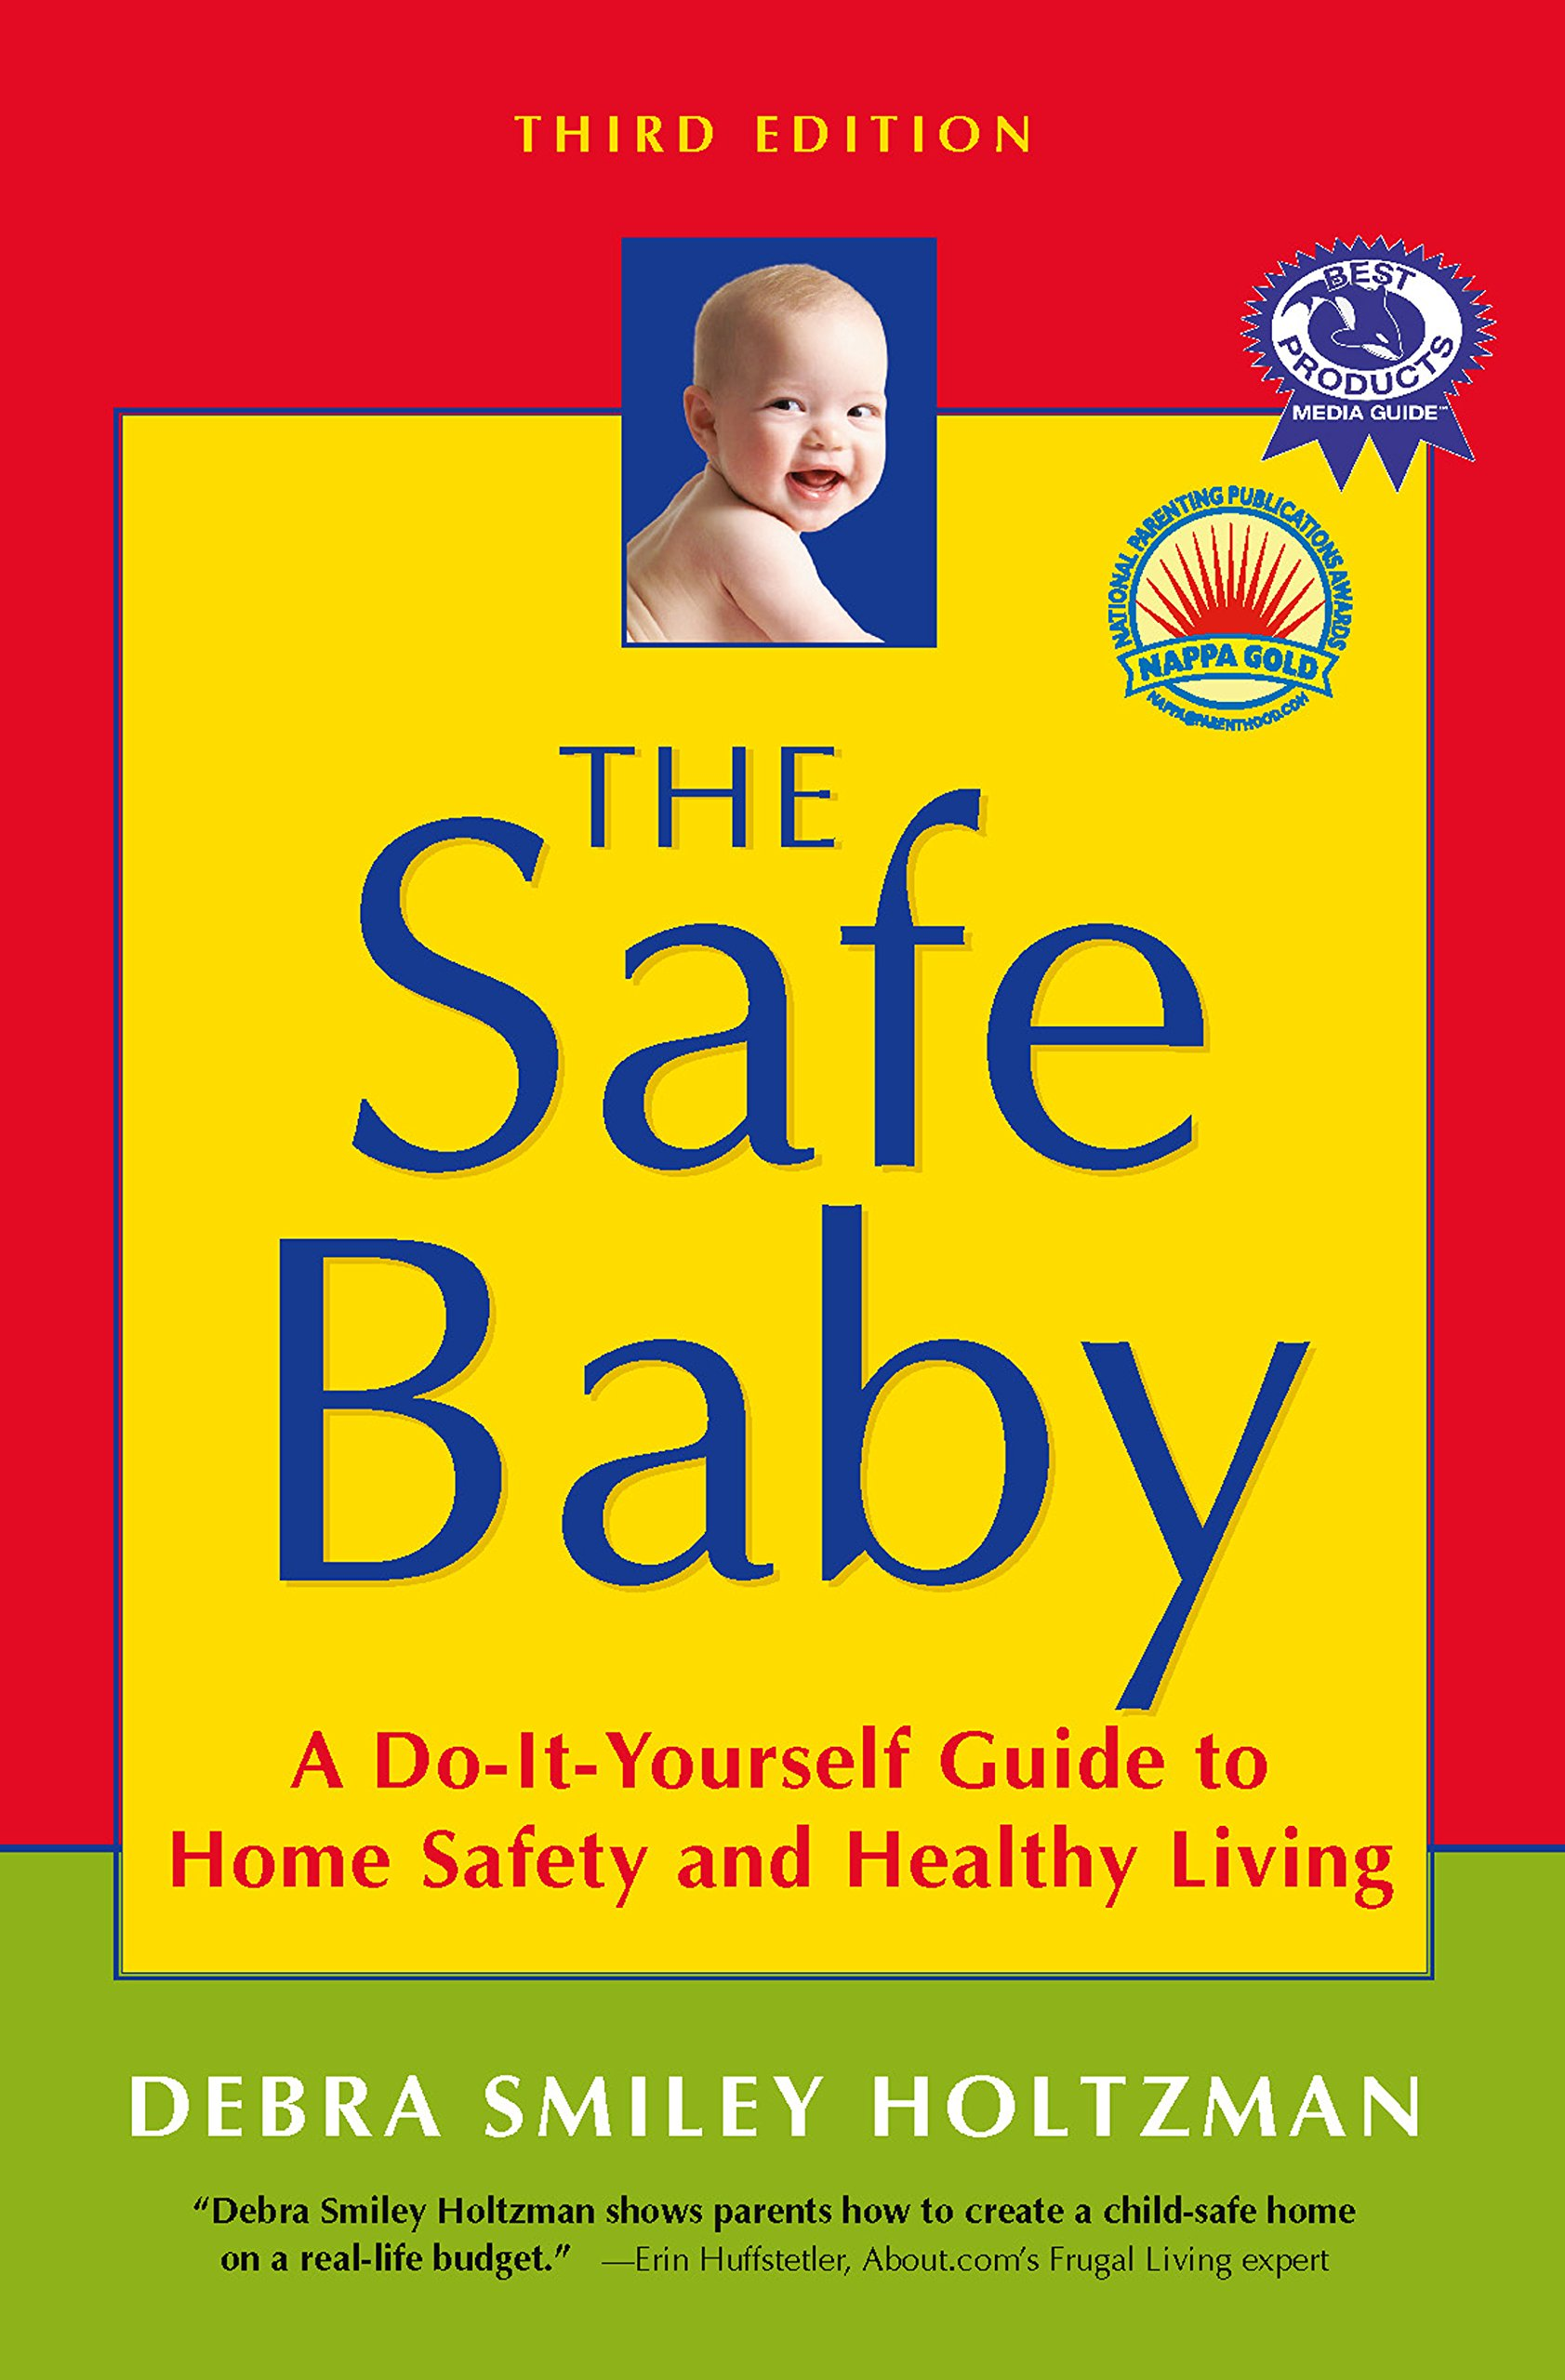 The Safe Baby: A Do-It-Yourself Guide to Home Safety and